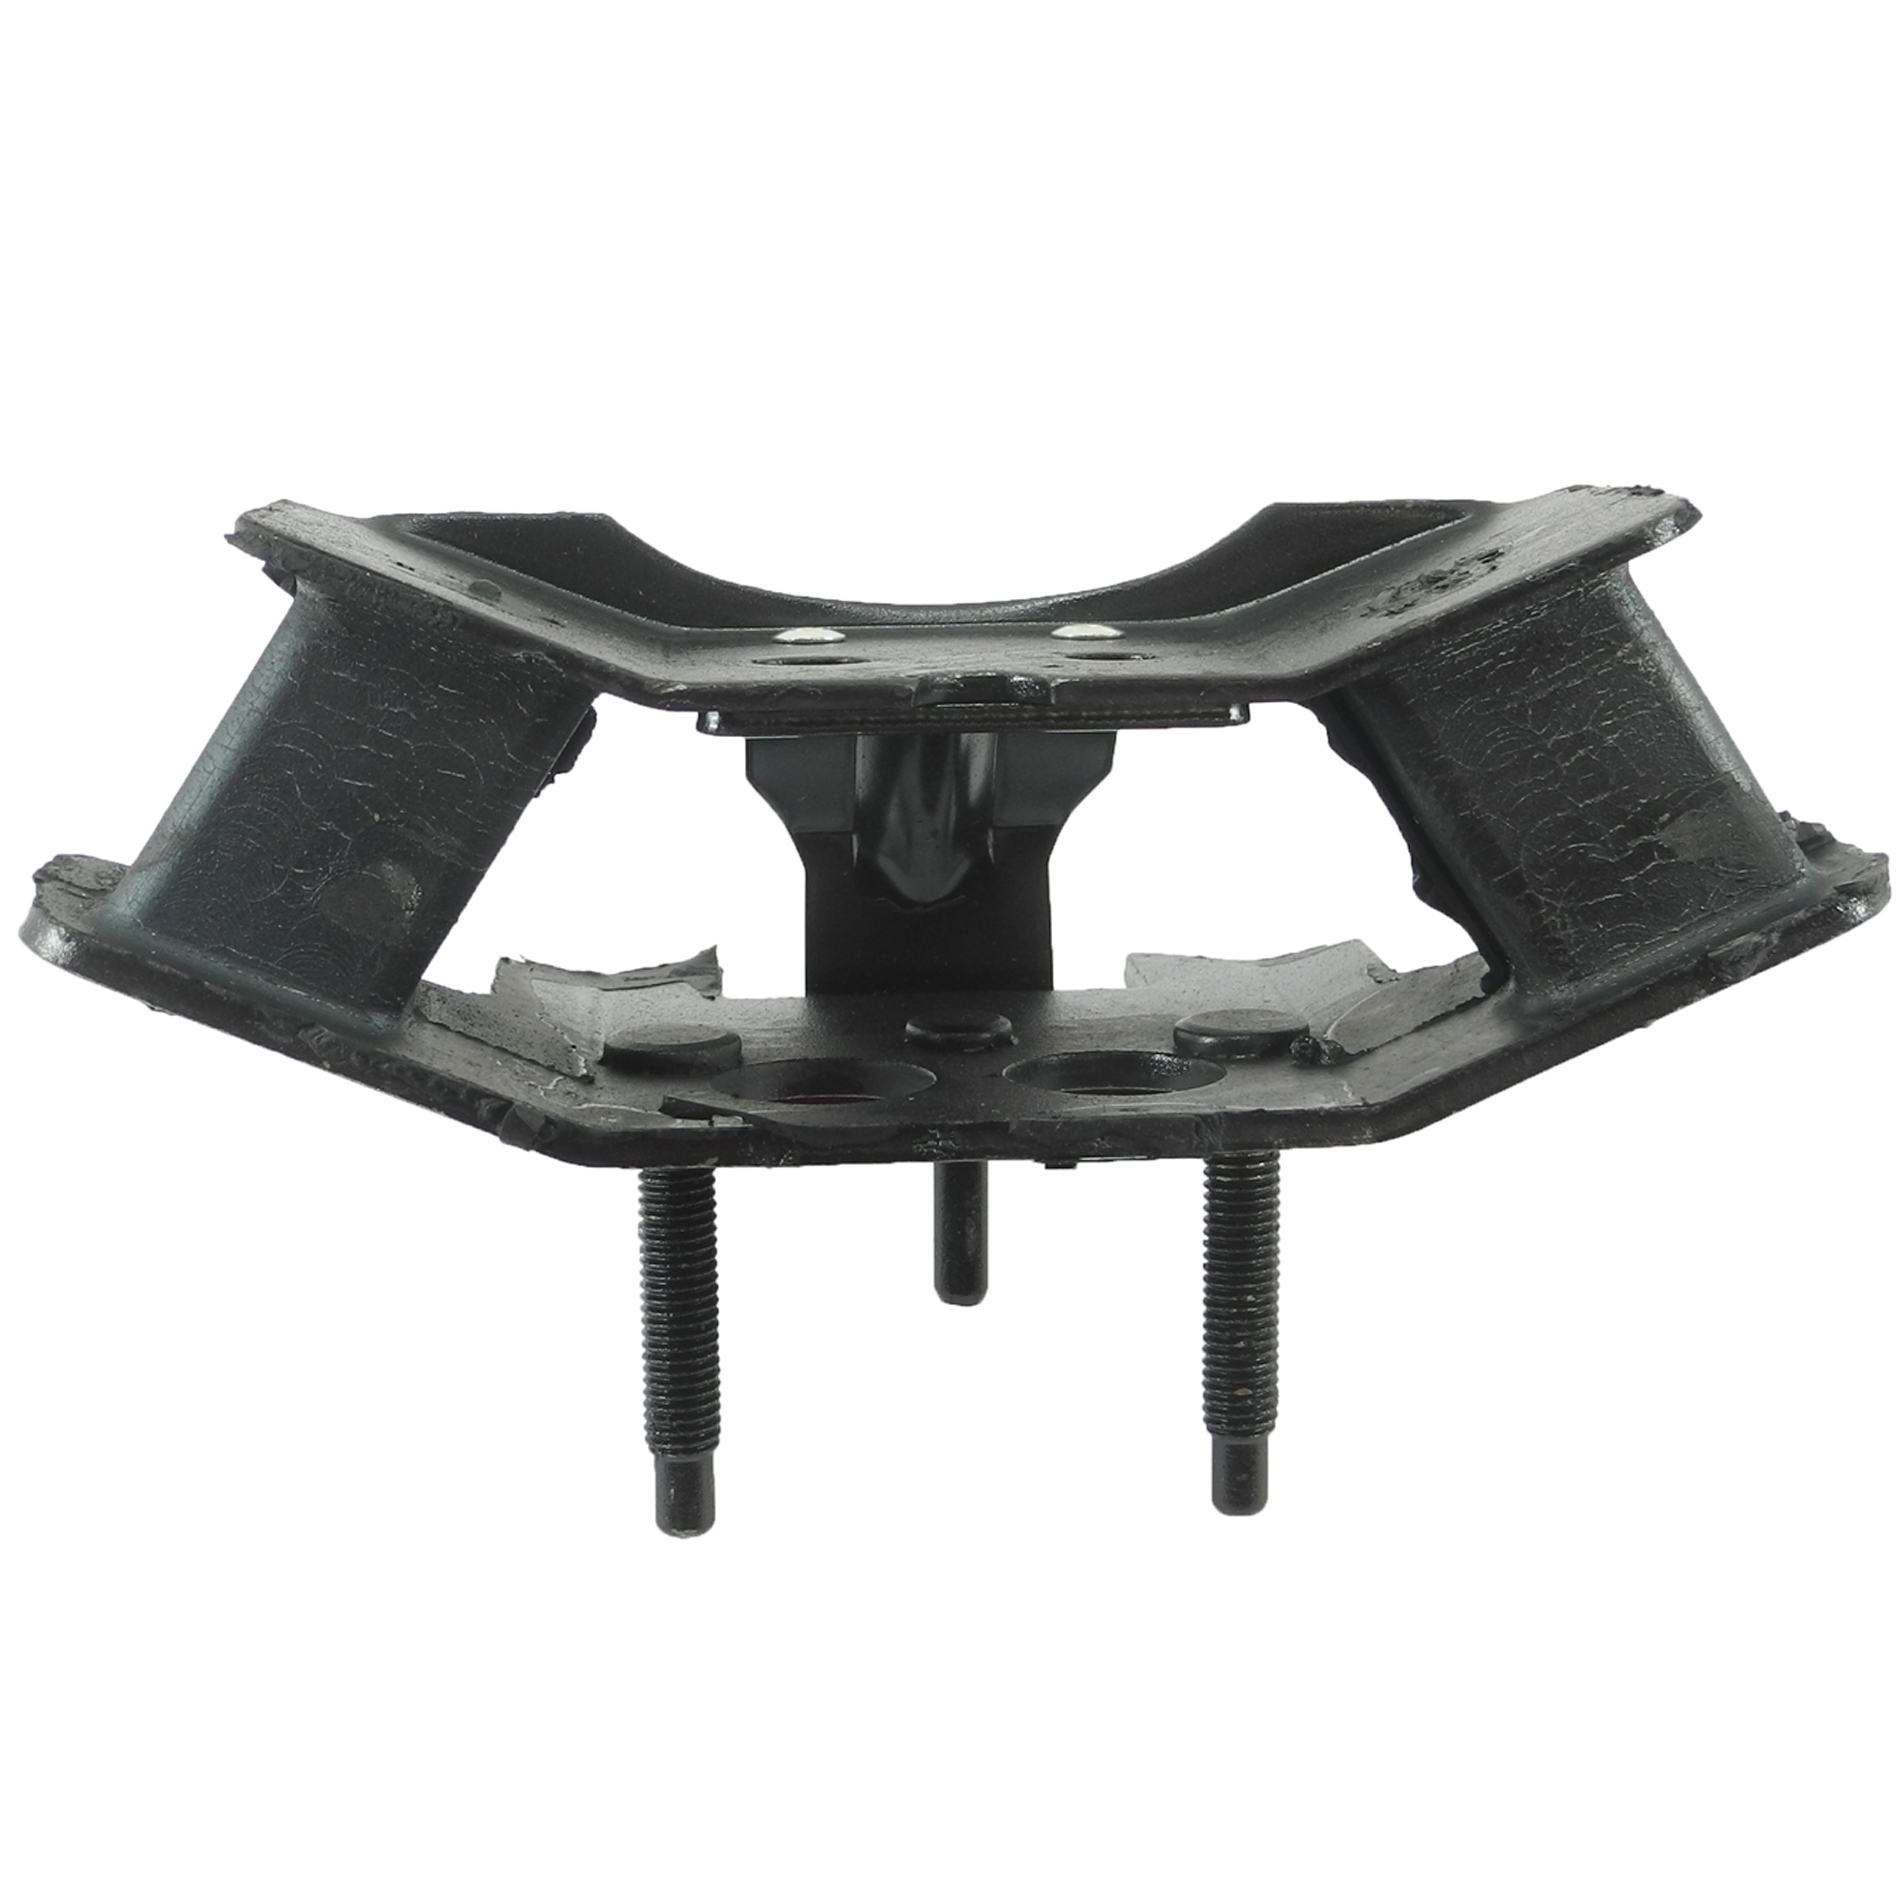 Transmission Mount 5373 For 2003-2004 Cadillac CTS 3.2L